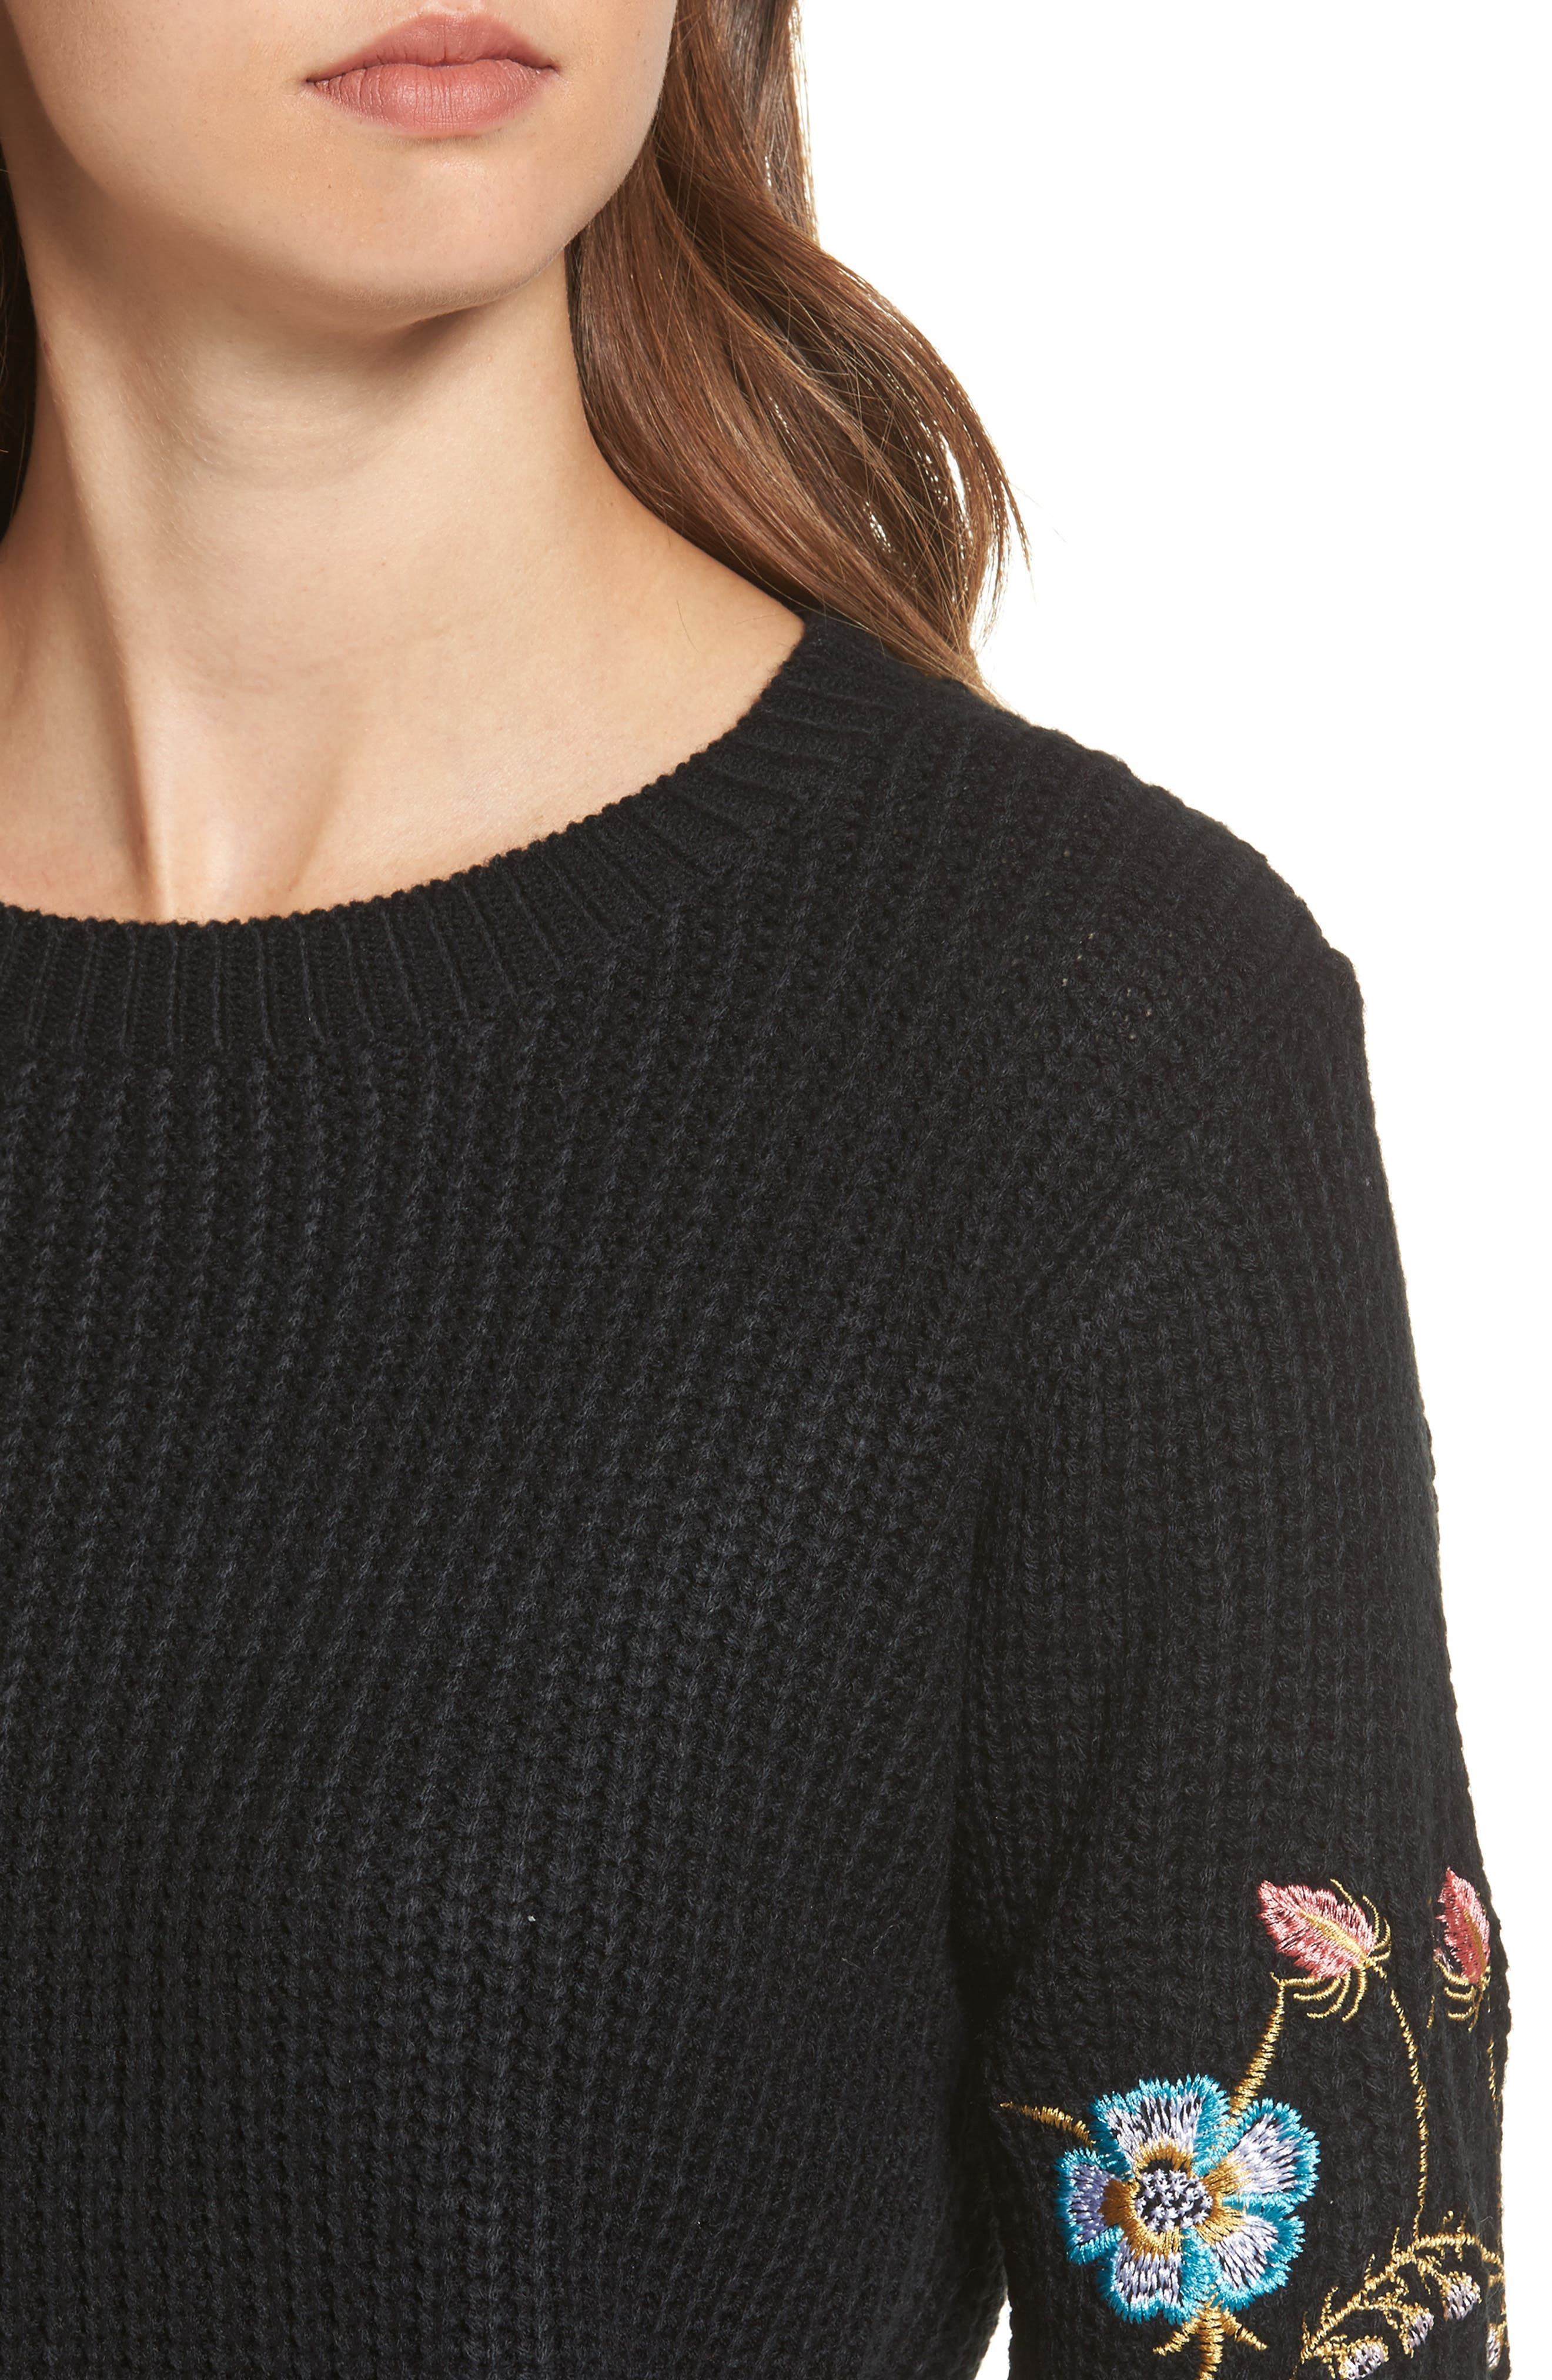 Embroidered Waffle Stitch Sweater,                             Alternate thumbnail 4, color,                             001